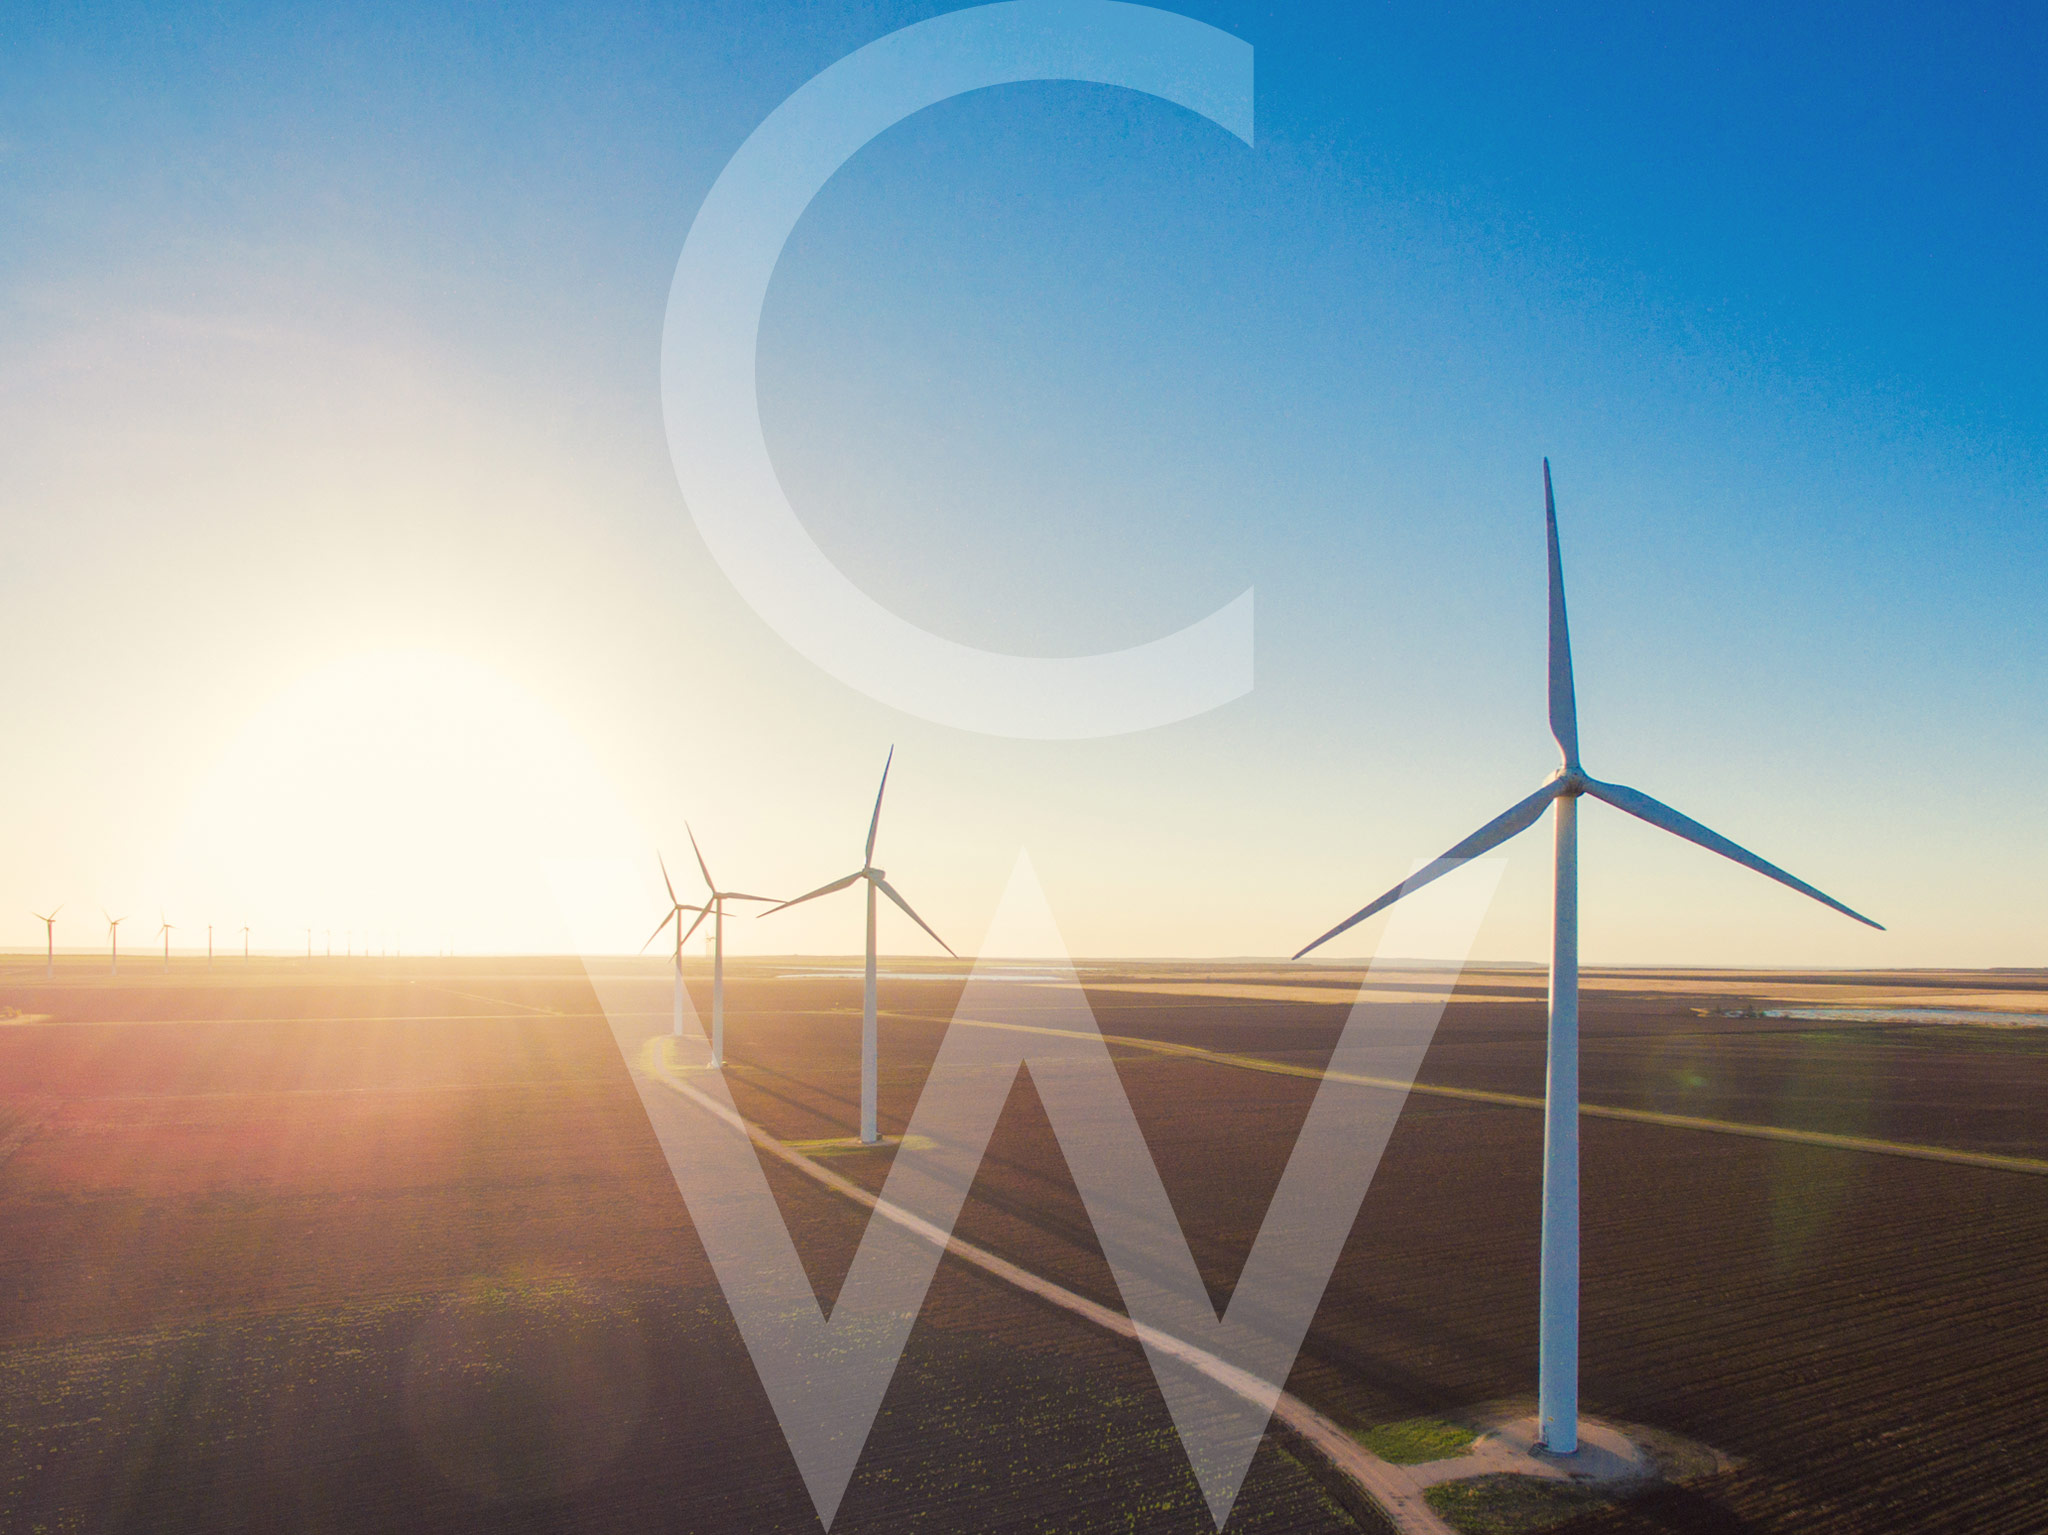 This is a landscape image of a wind farm at sunset.